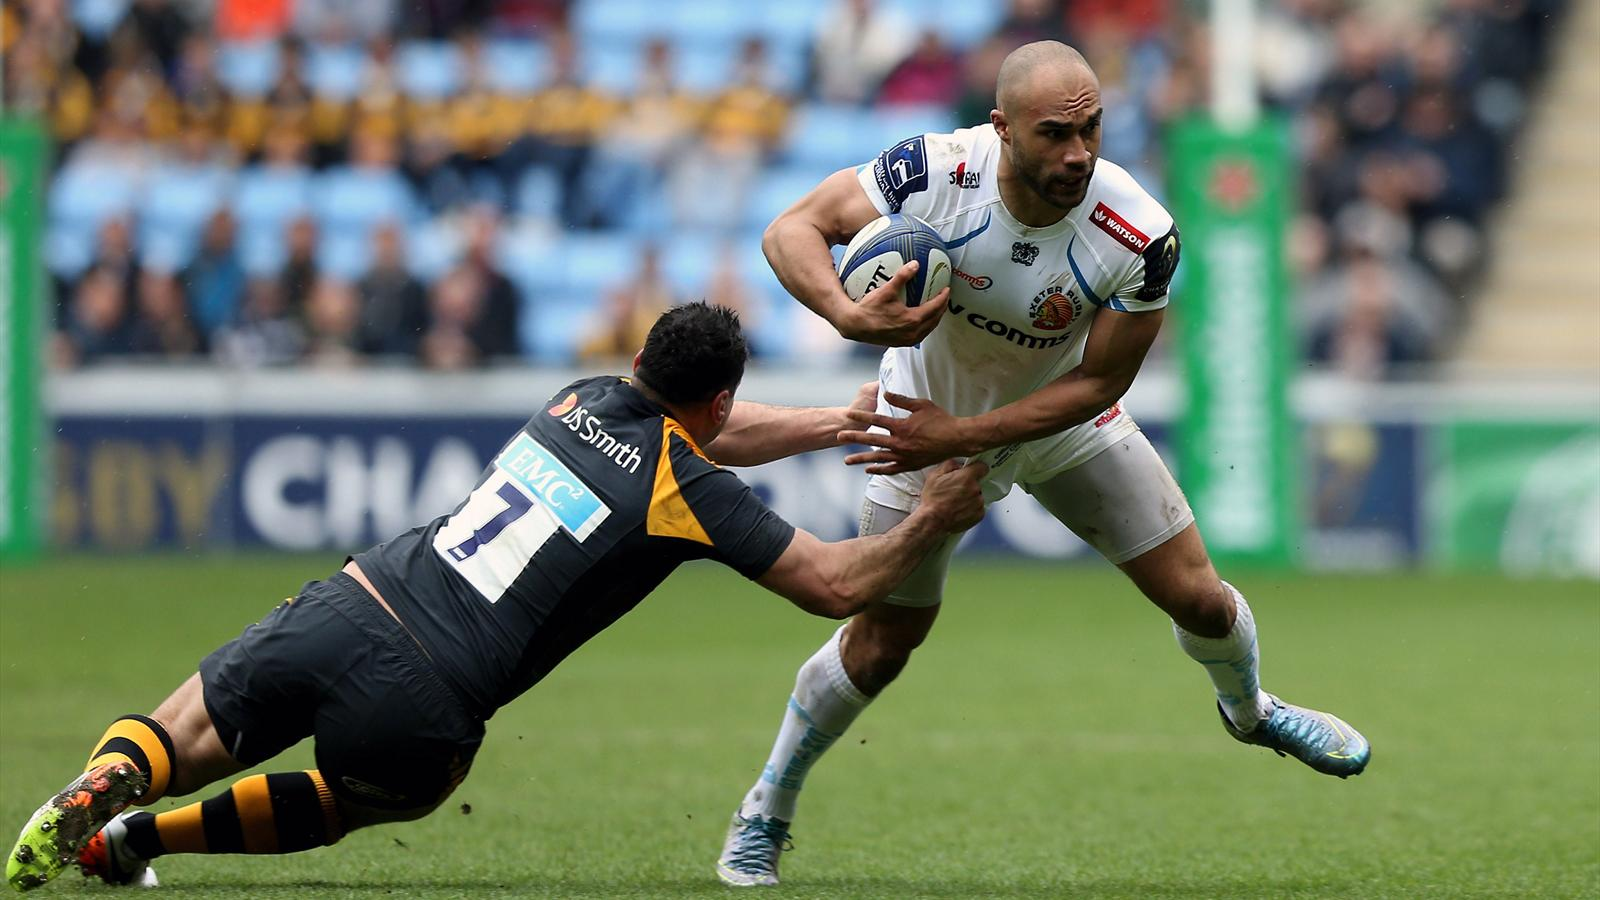 Olly Woodburn (Exeter) face aux Wasps - 9 avril 2016